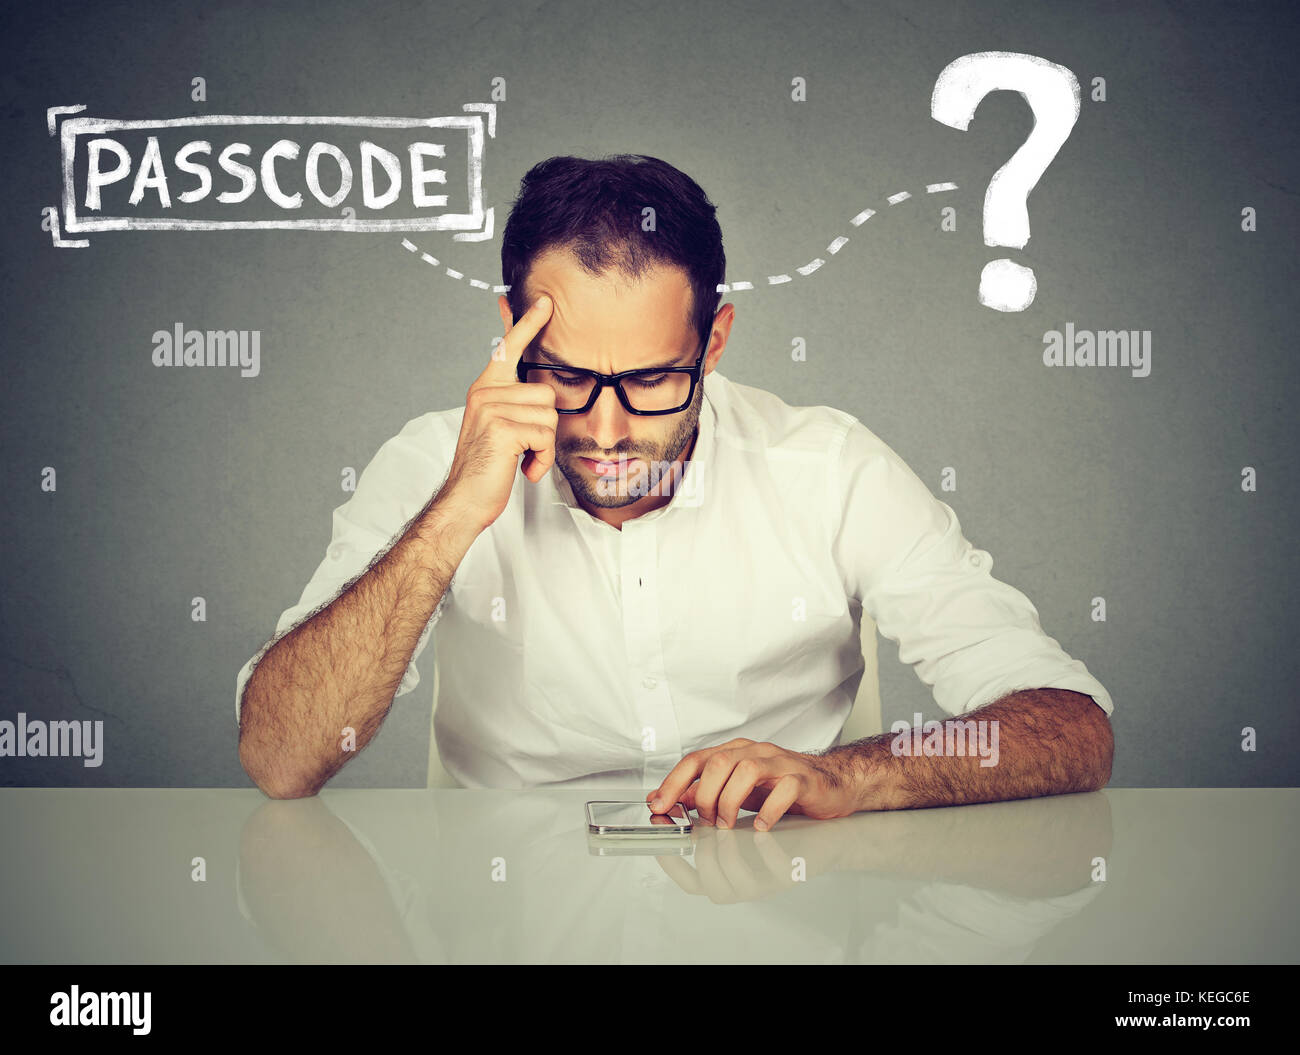 Desperate young man trying to log into his smart phone forgot password - Stock Image